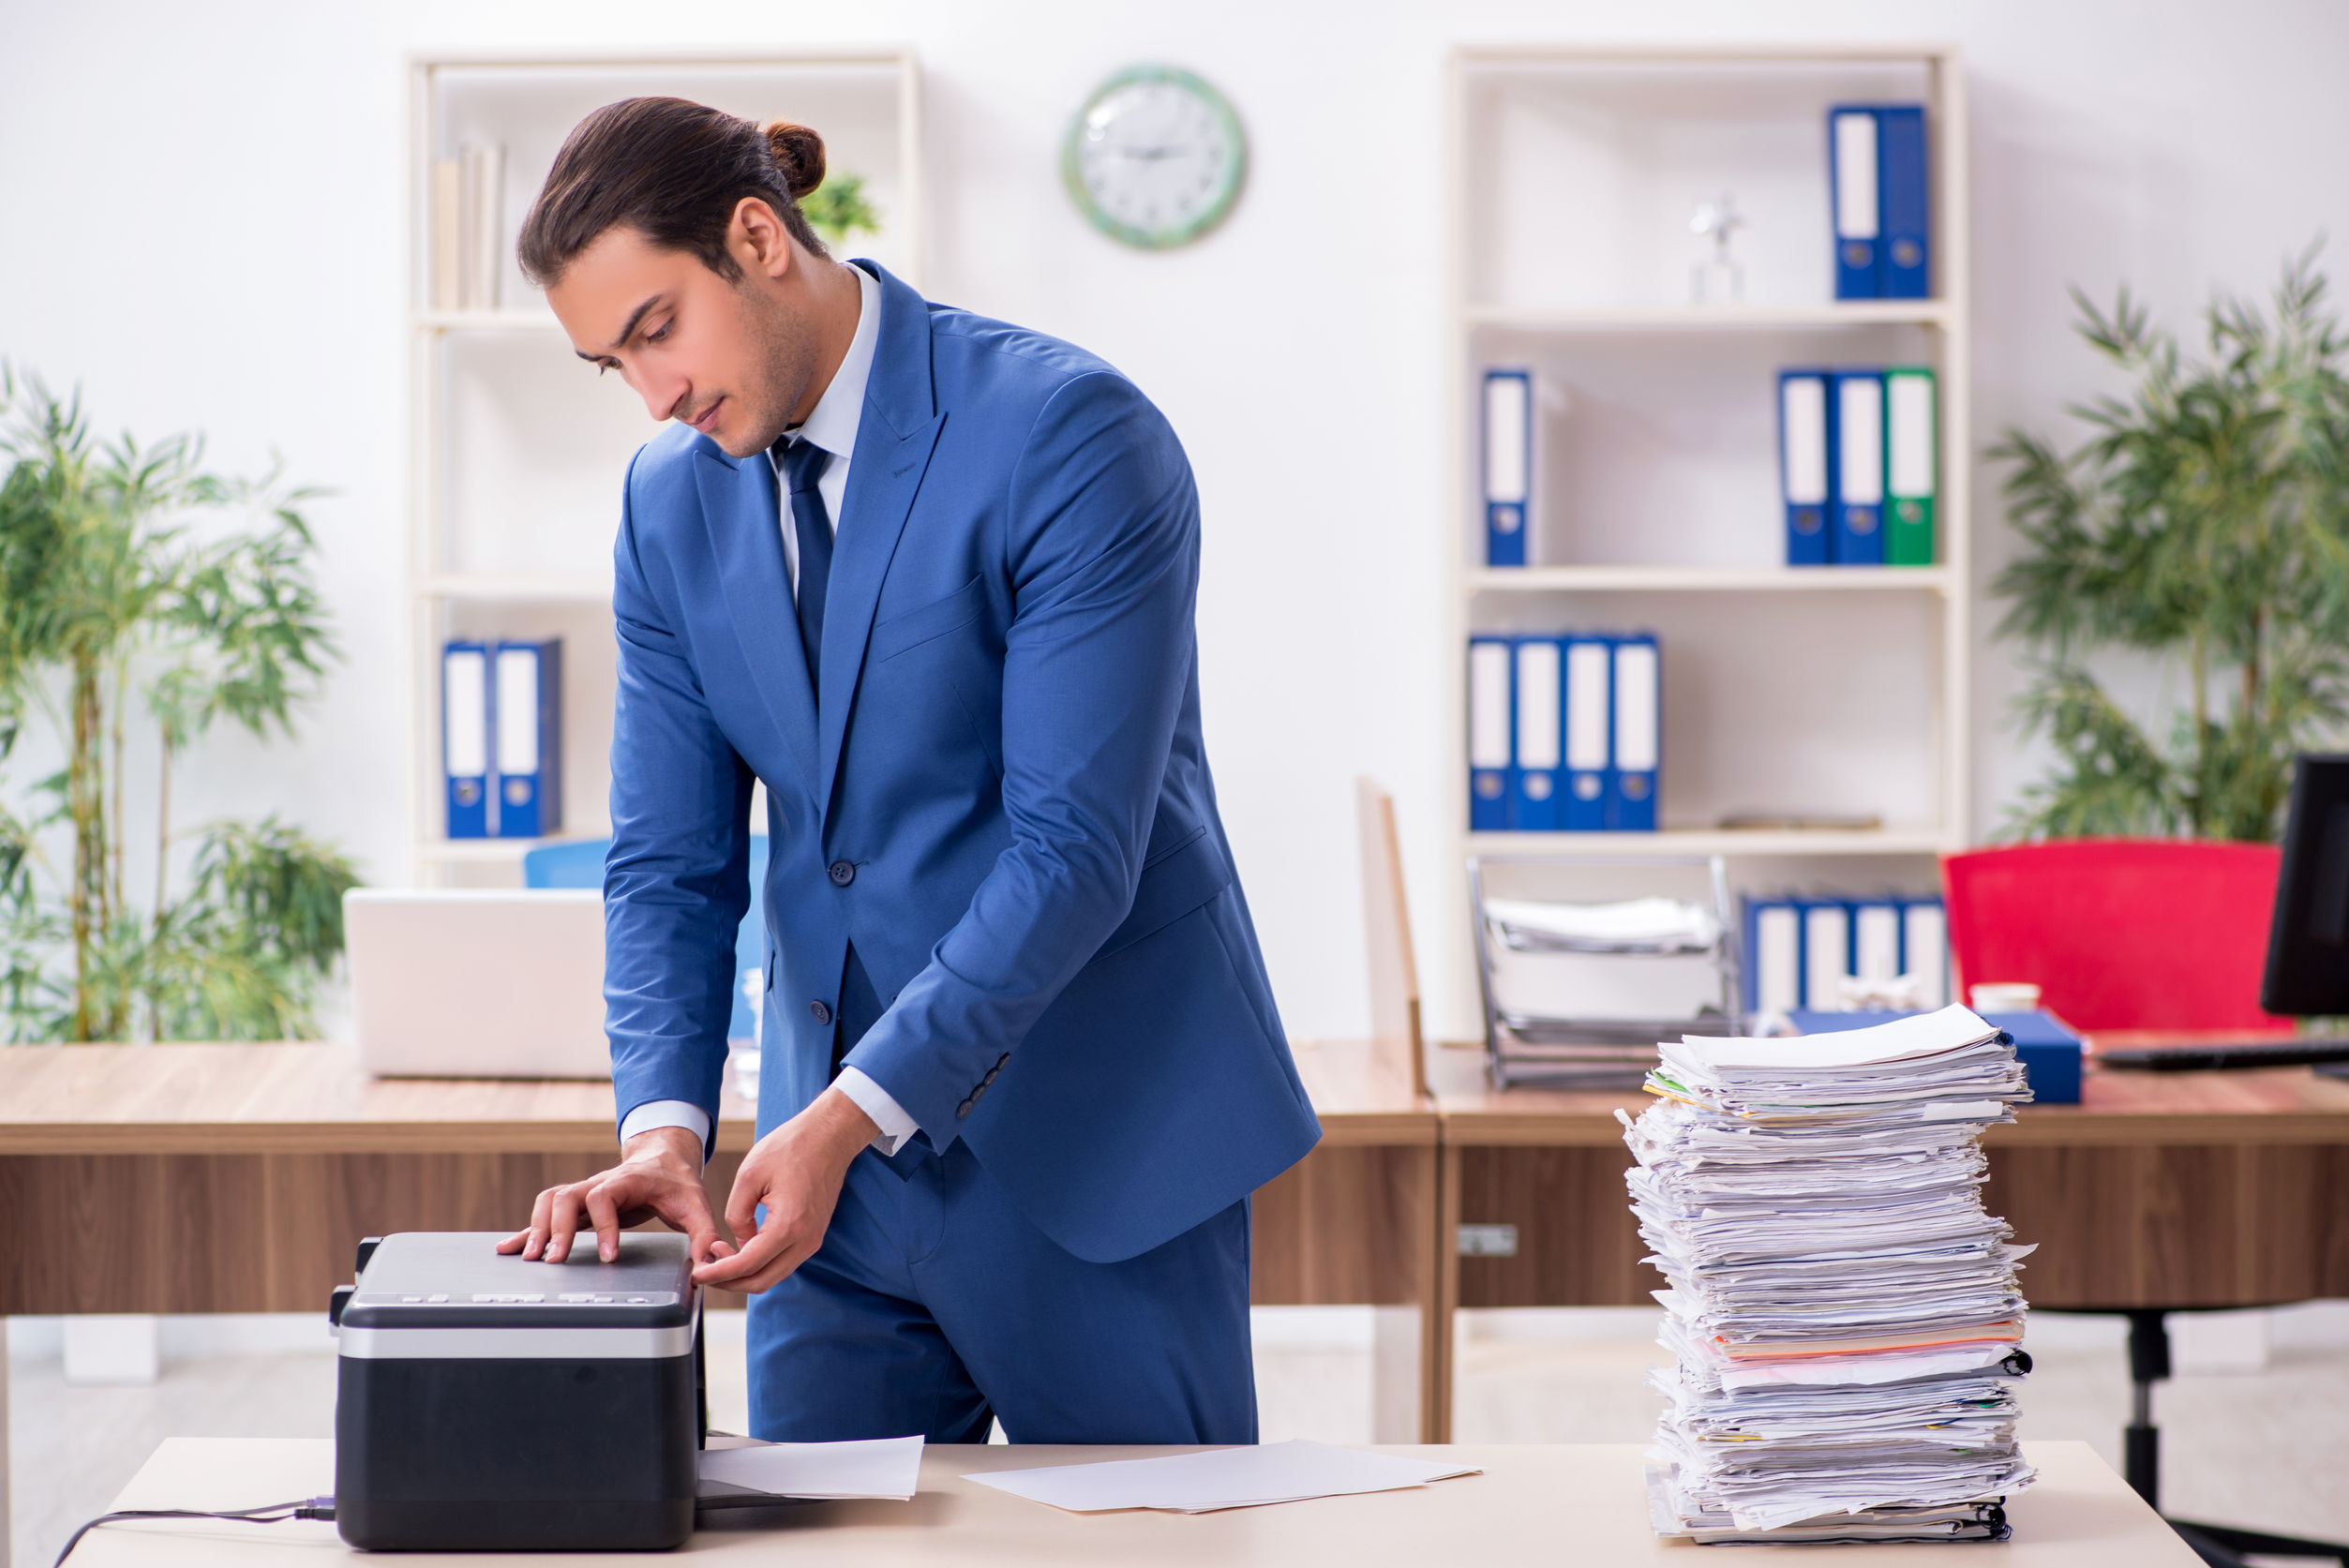 HOW MANAGED PRINT SERVICES BENEFITS THE RETAIL INDUSTRY